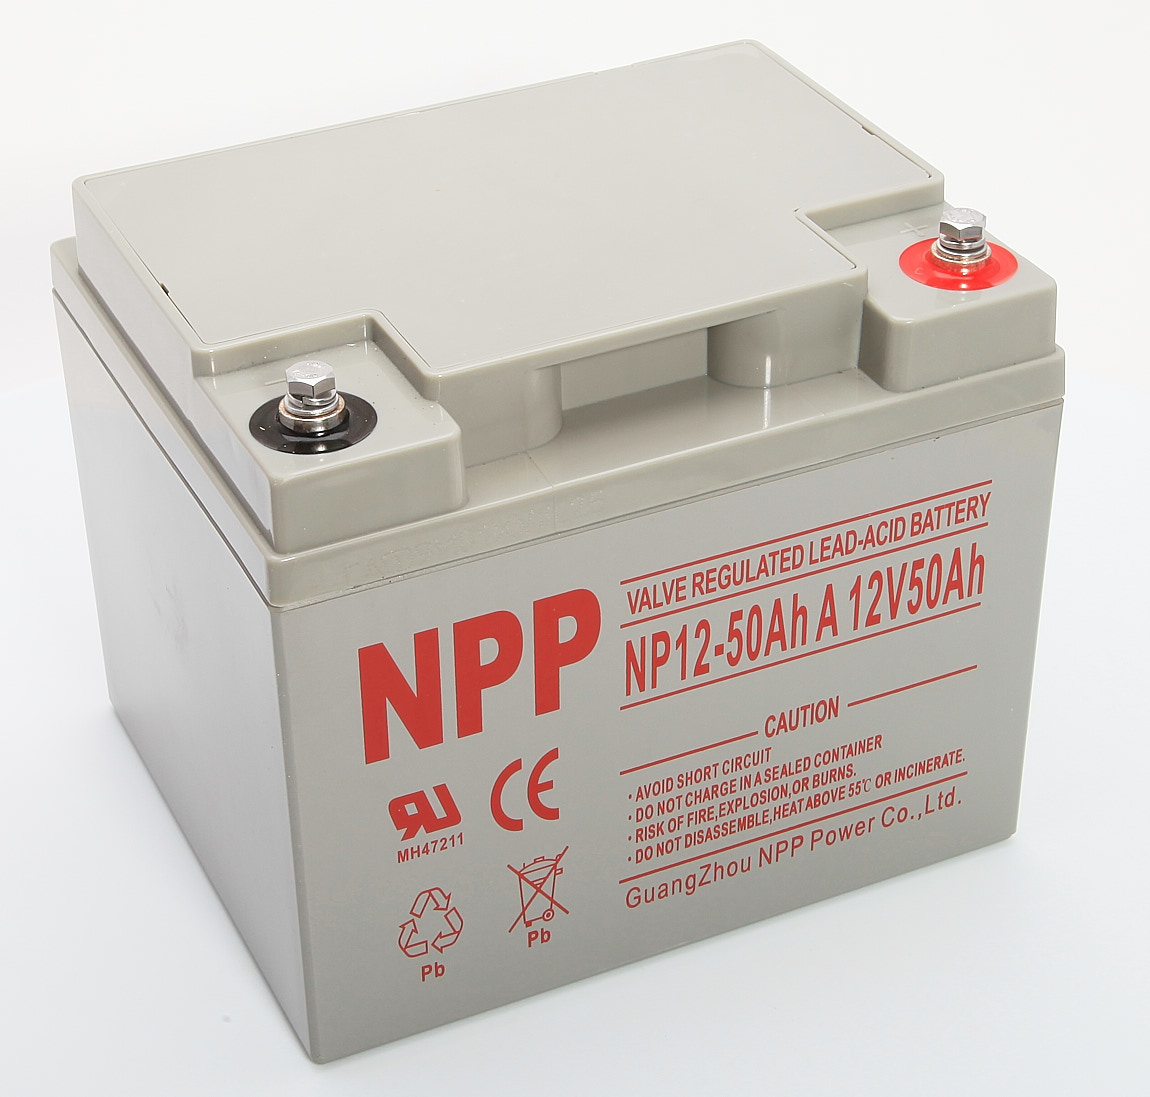 Details about New Valve Regulated Lead-Acid Battery NP12-50Ah A 12V 50Ah  Guang Zhou NPP Power